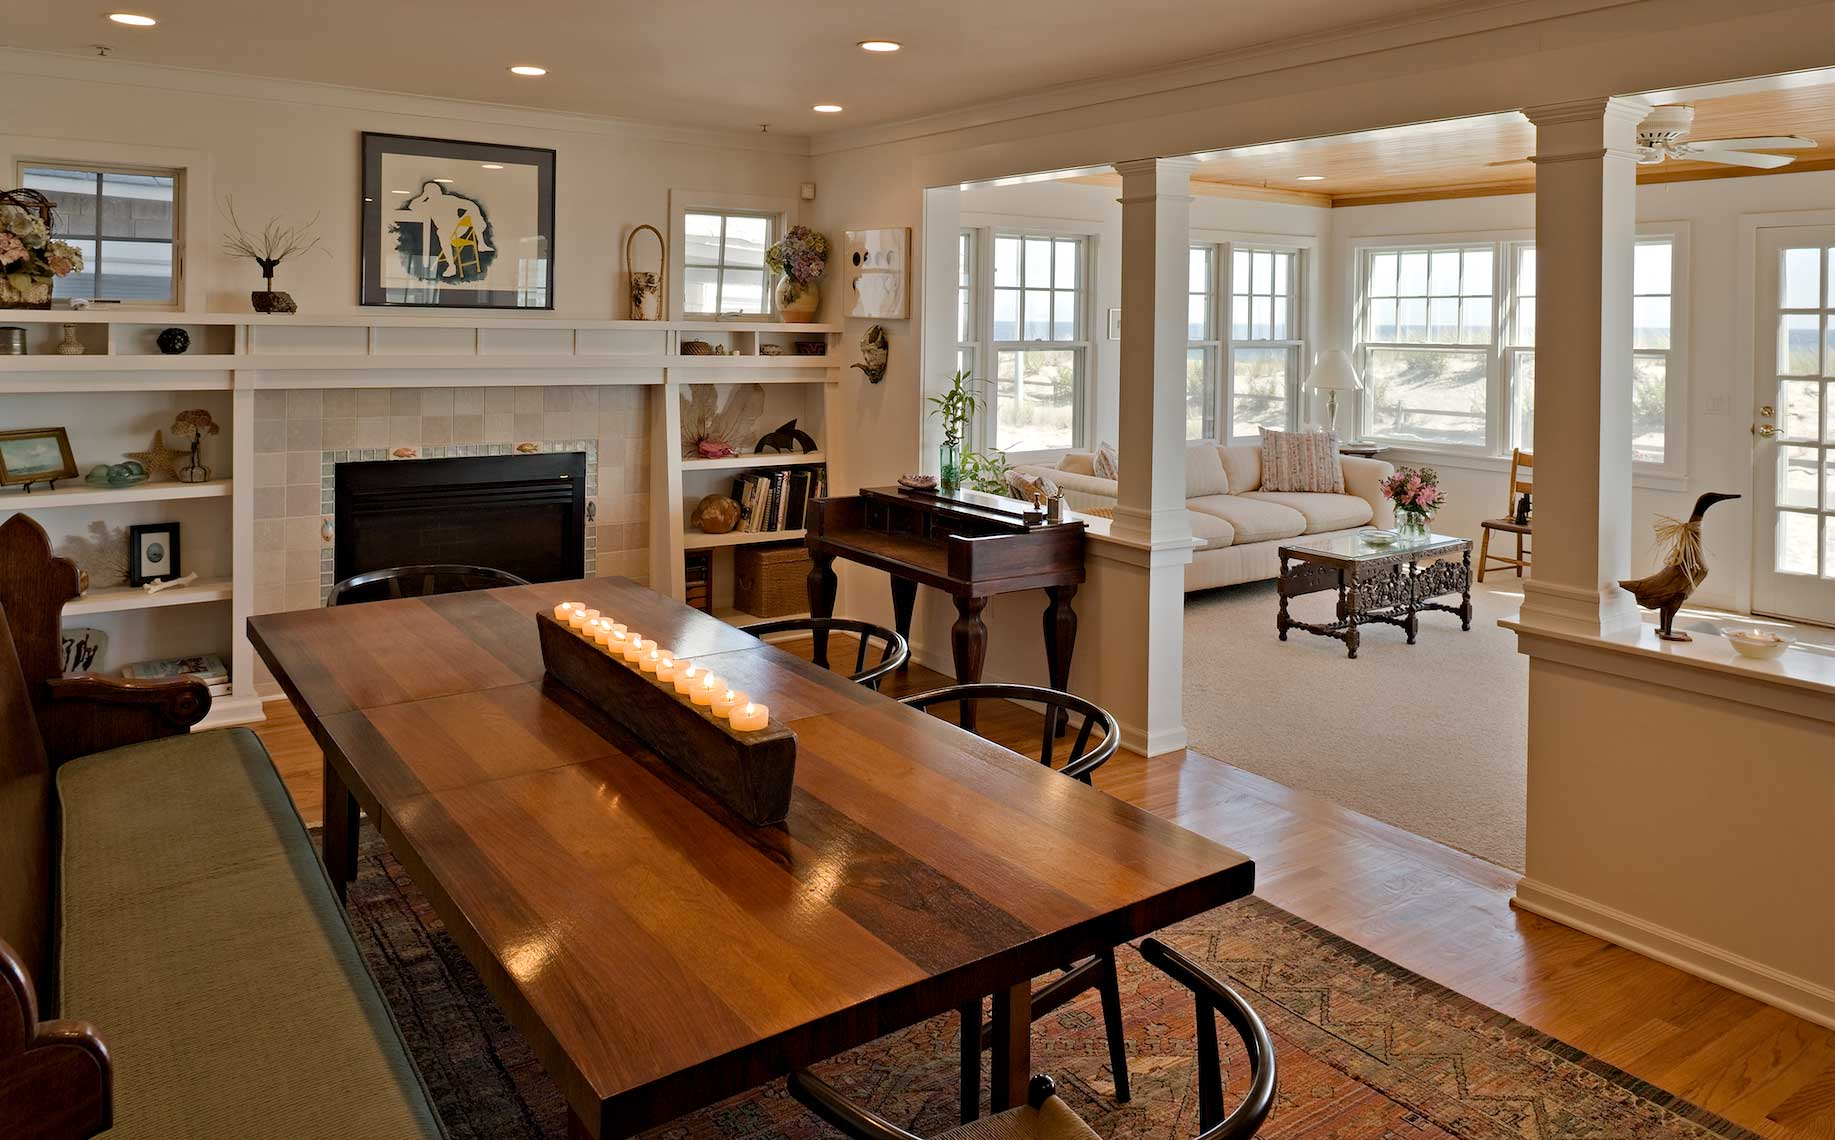 Beach house - Dining Room - Manasquan, NJ